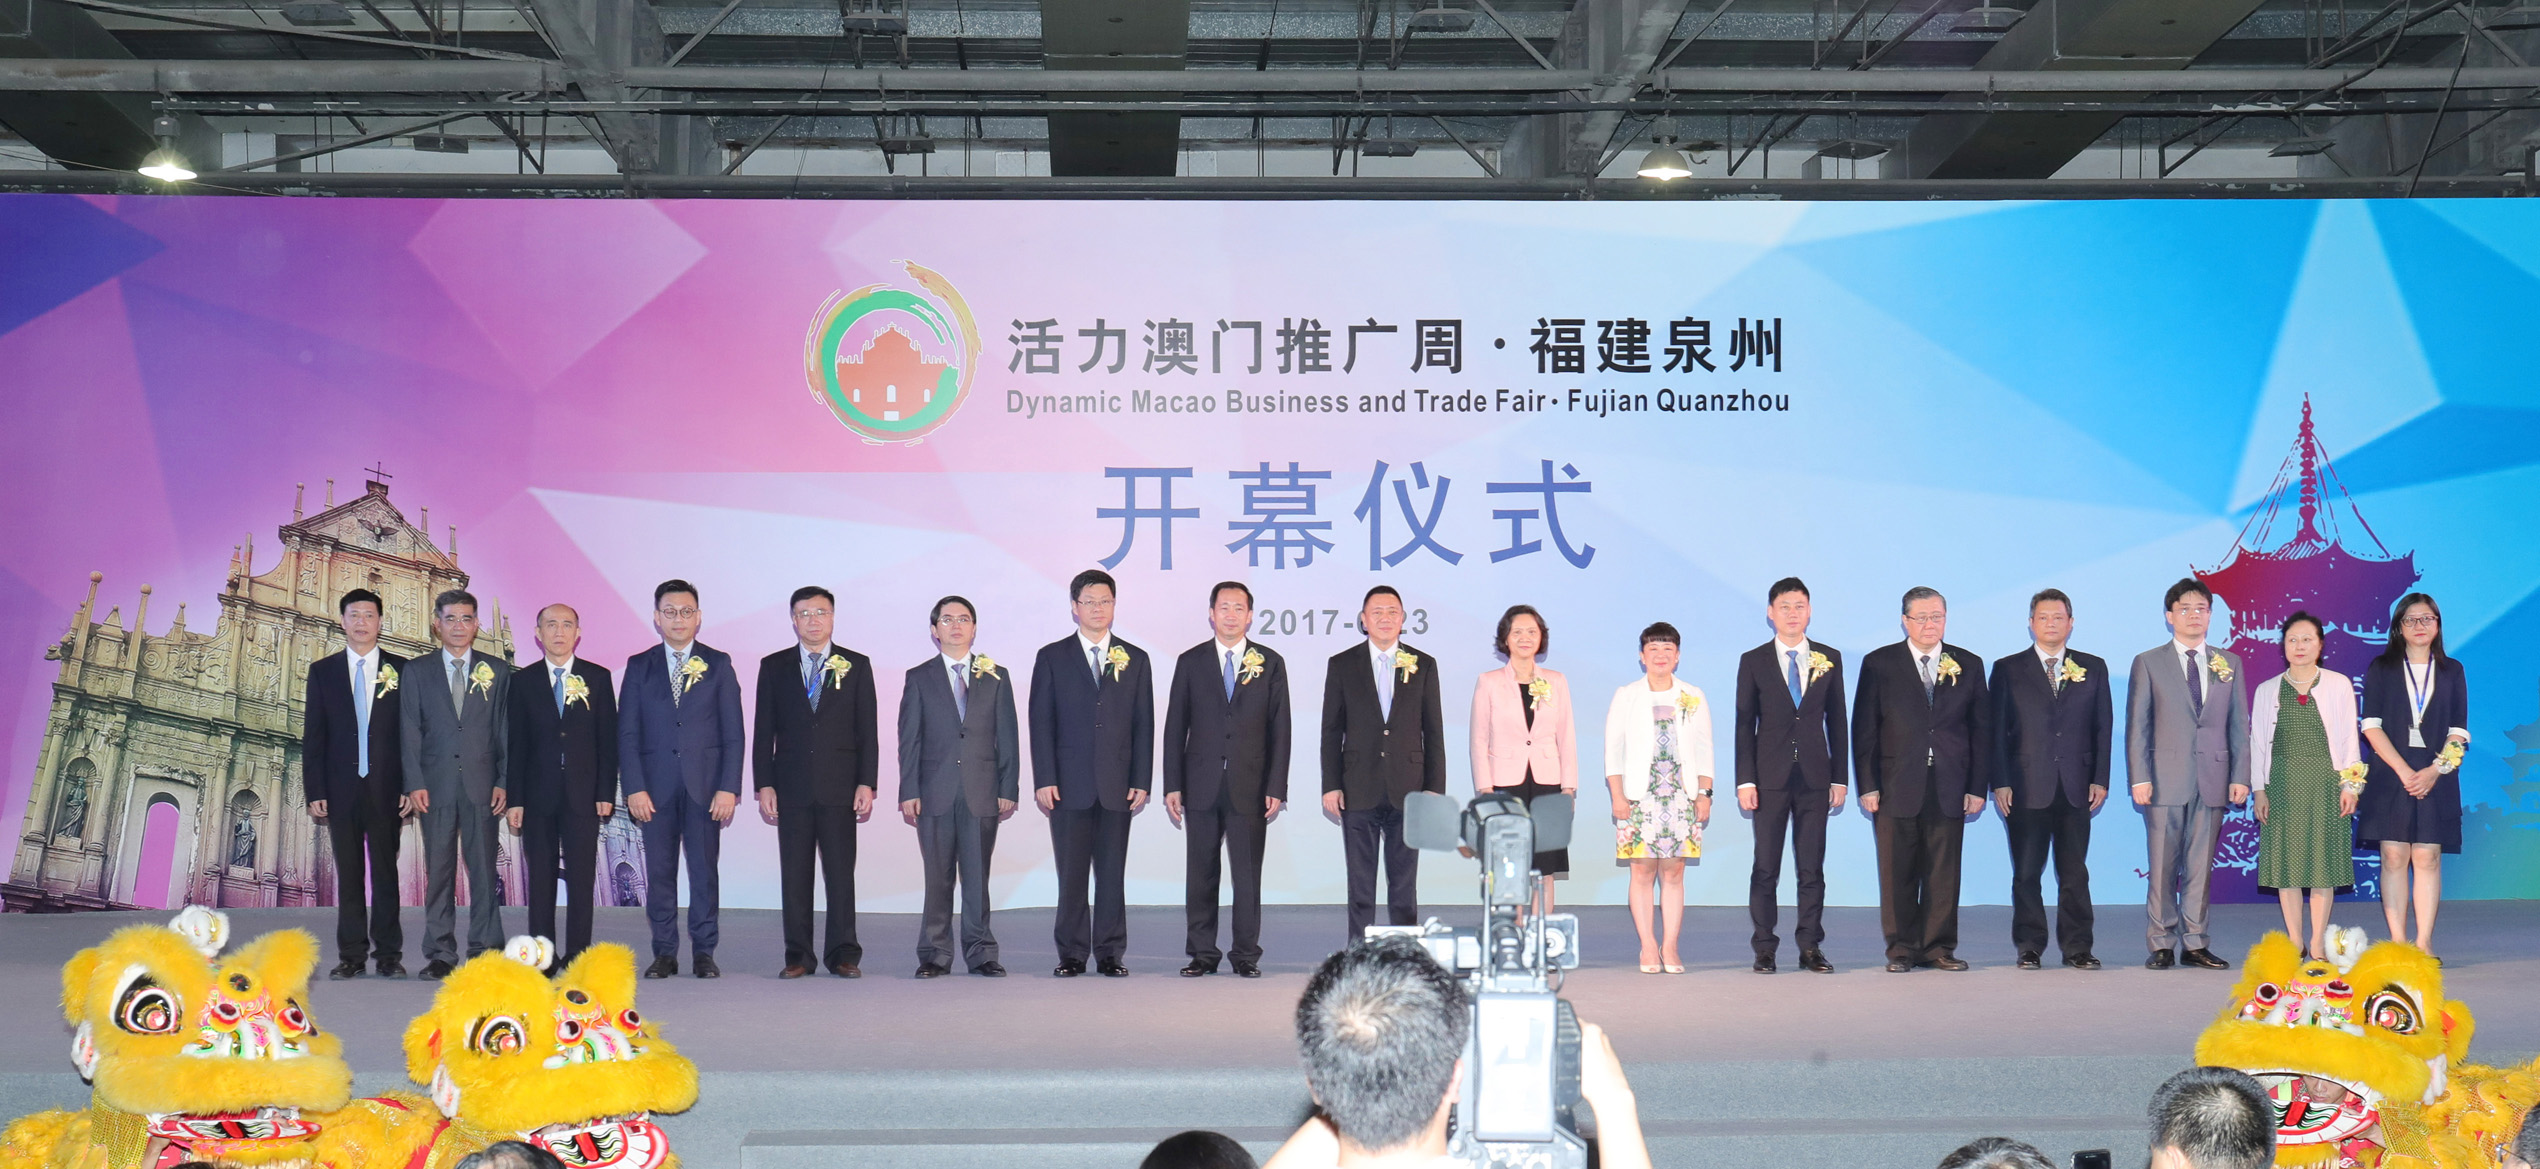 Opening ceremony of the Dynamic Macao Business and Trade Fair-Quanzhou, Fujian